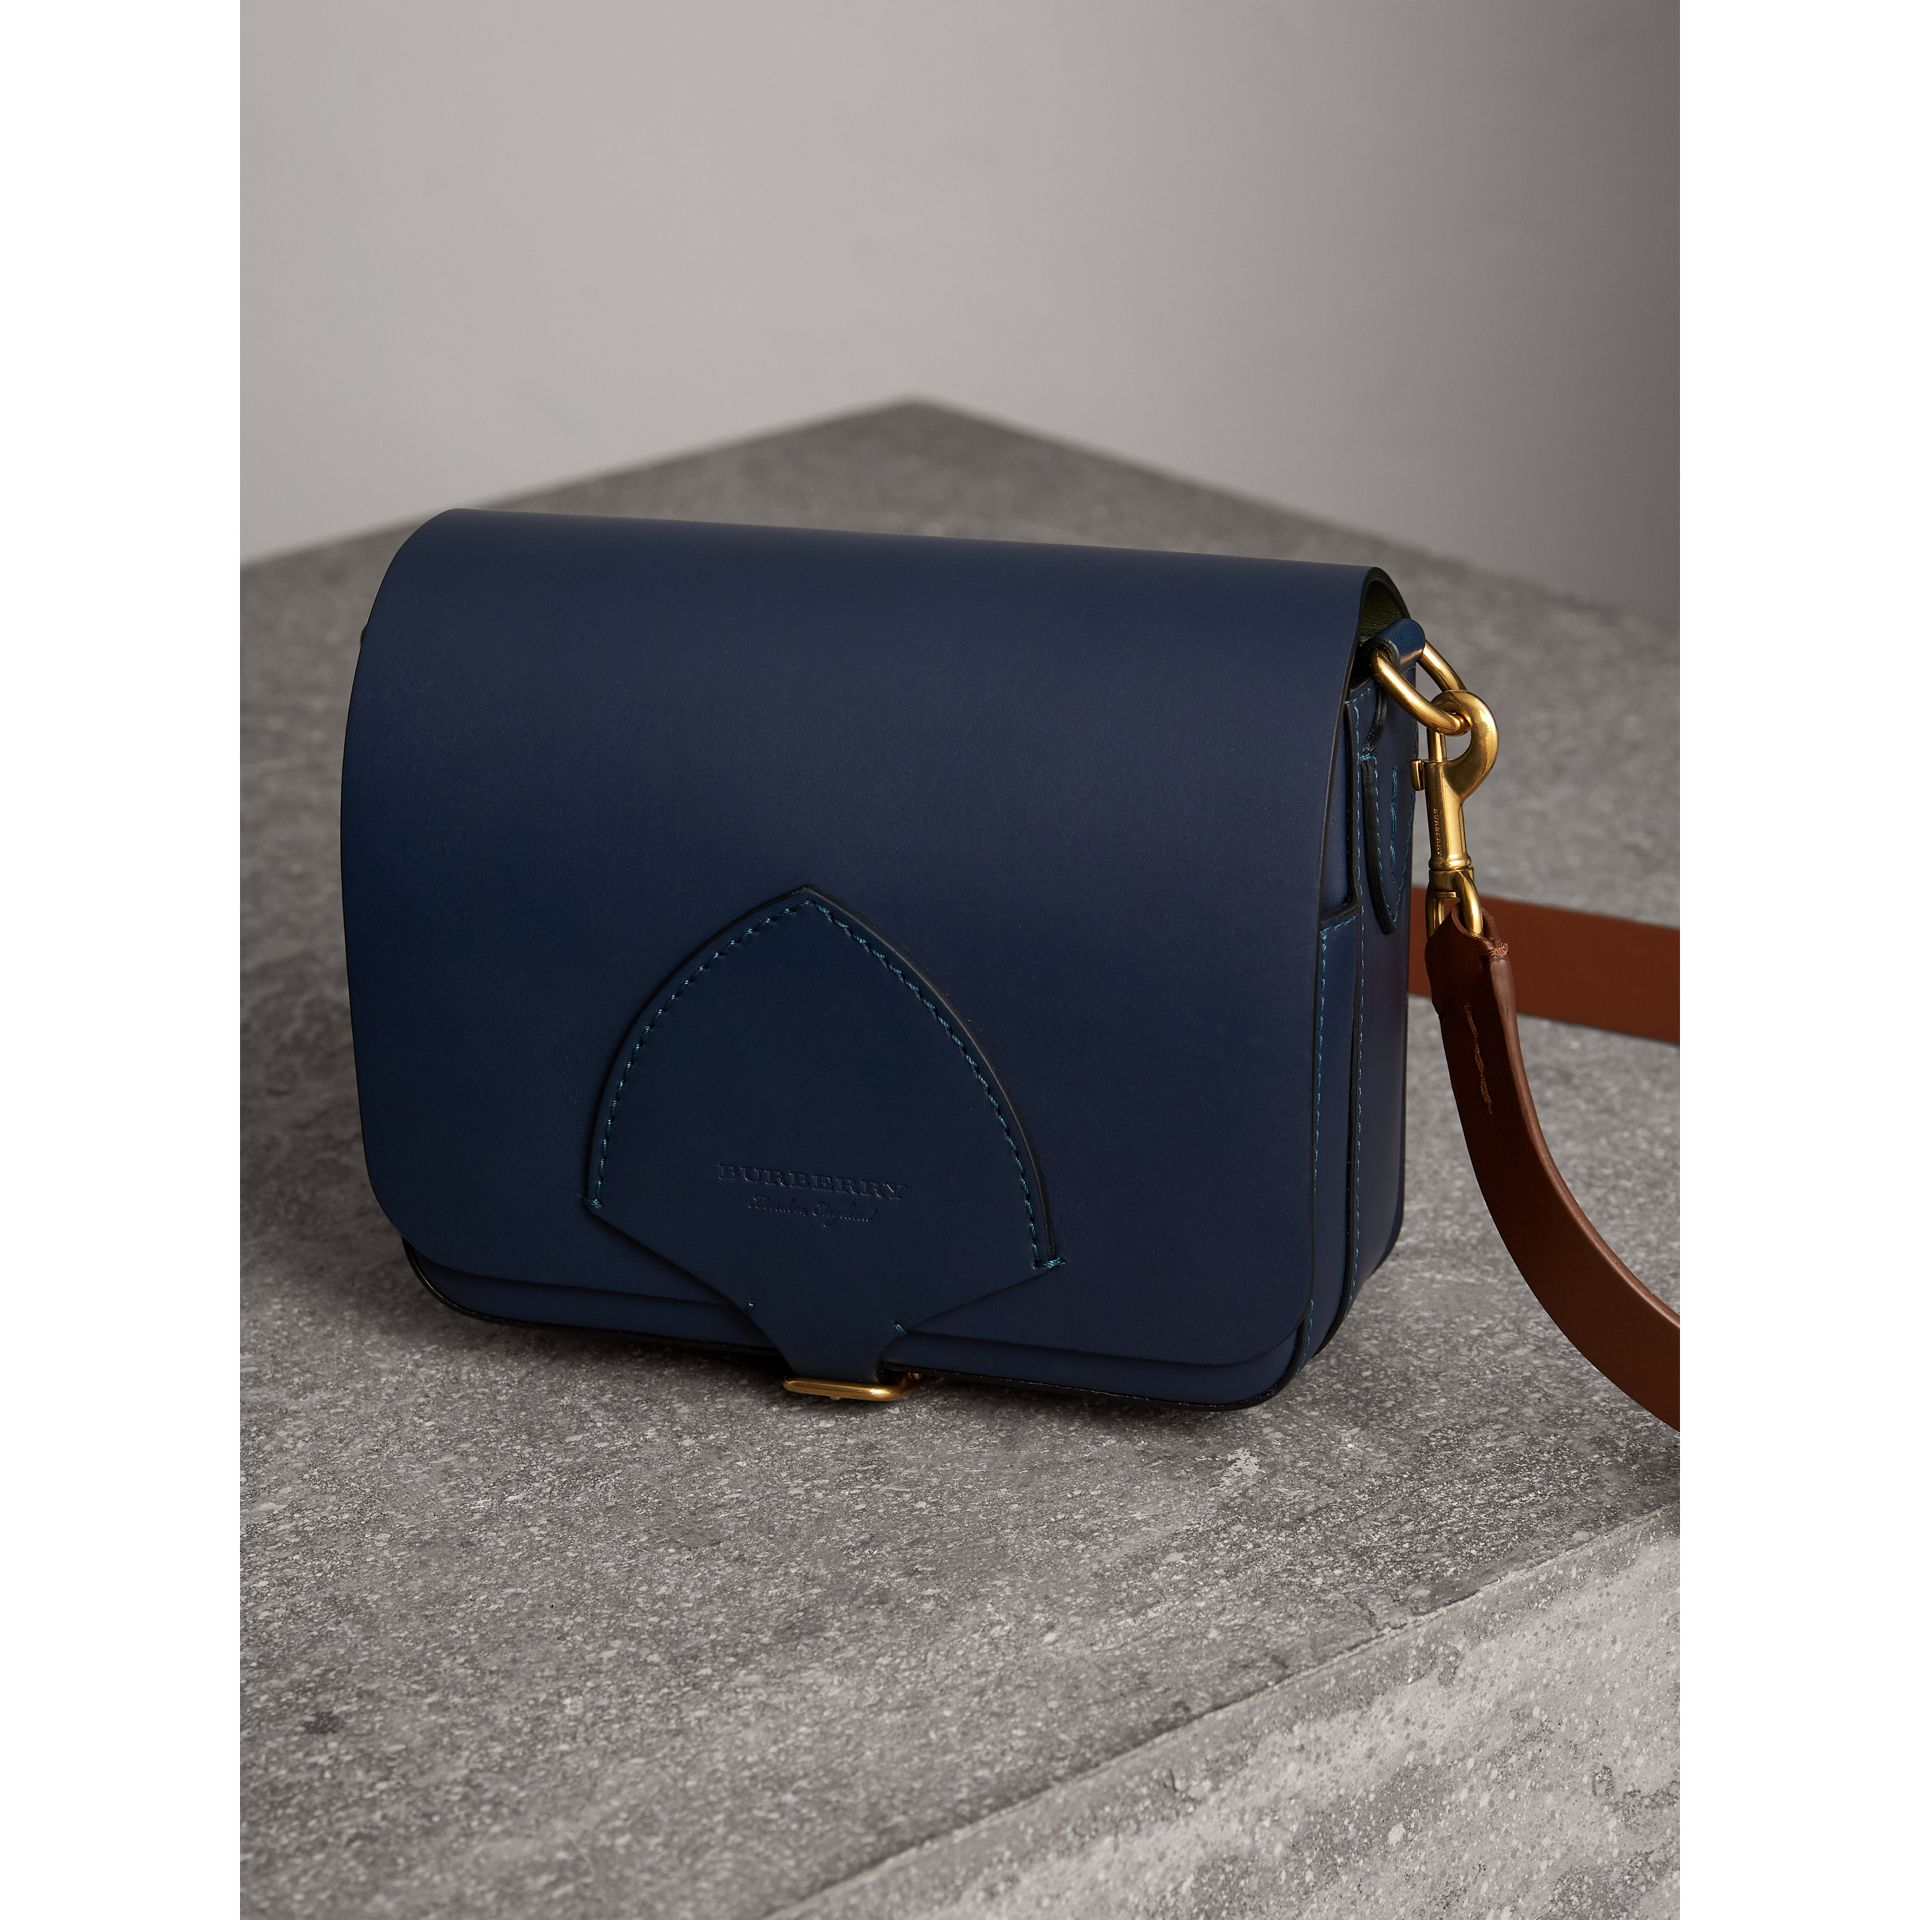 The Square Satchel in Leather in Indigo - Women | Burberry - gallery image 5